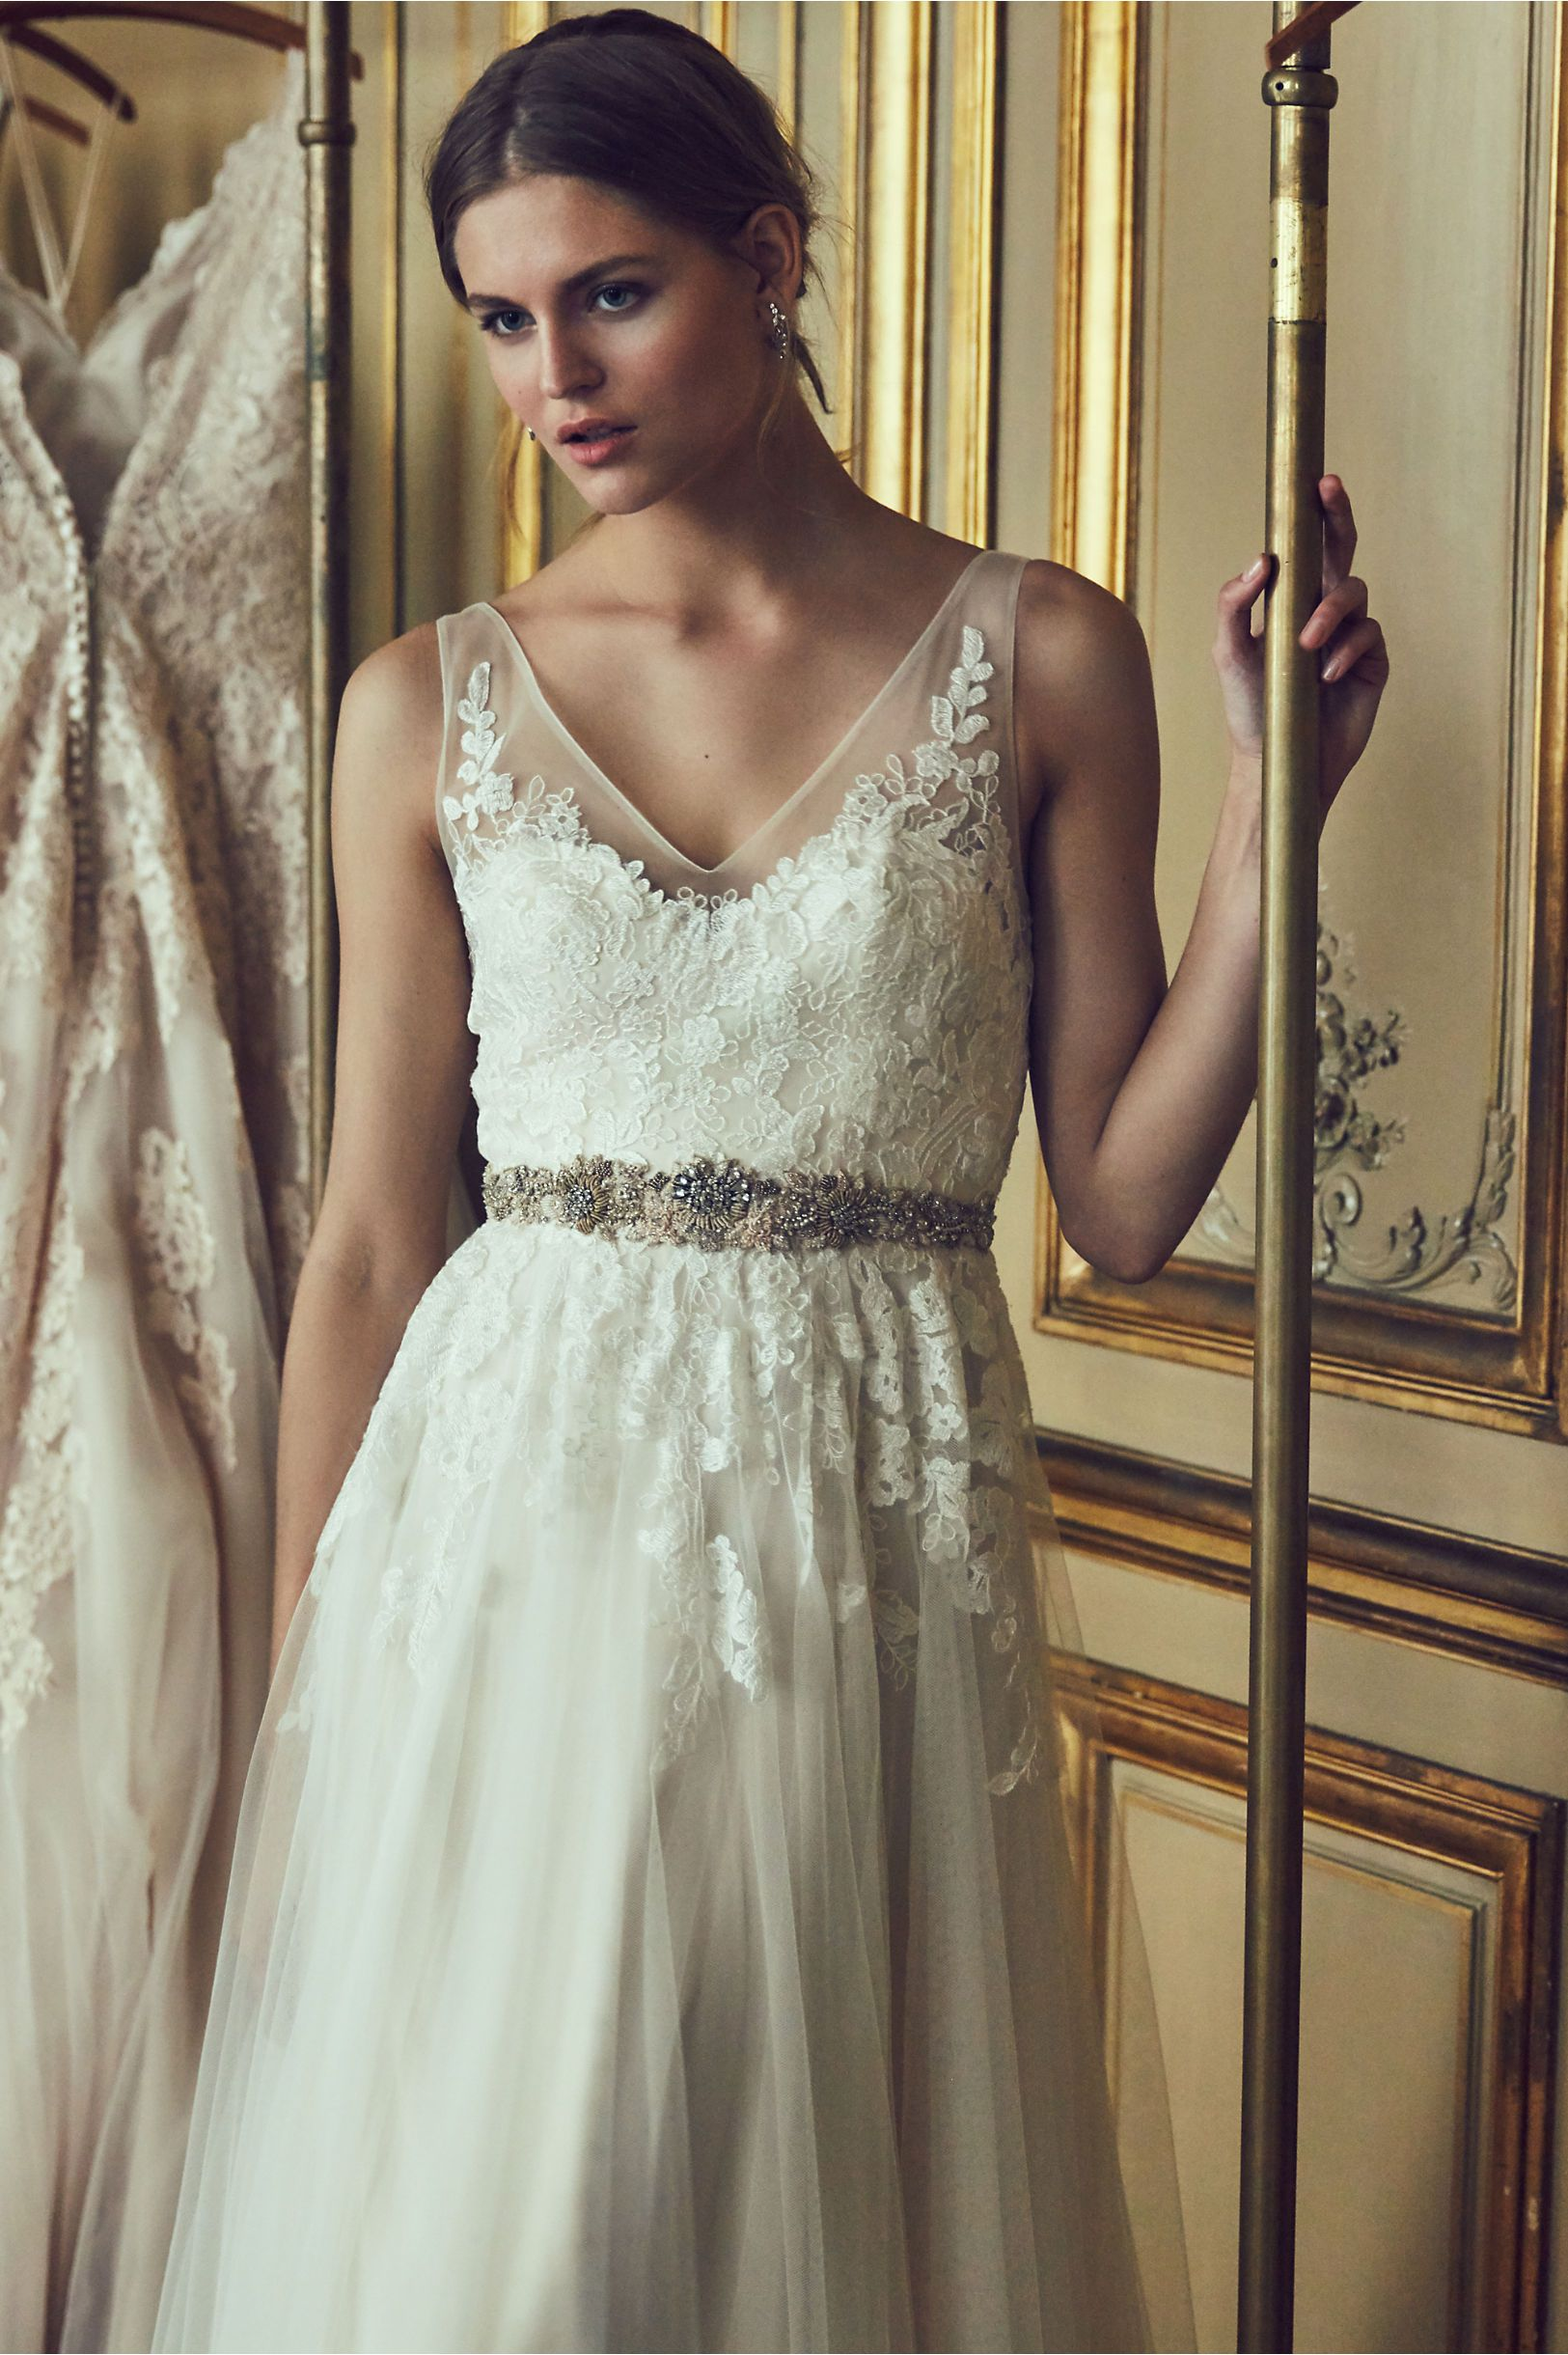 TagsBuy And Sell BHLDN Used Preowned Wedding DressesBHLDN Dresses For Sale PreOwned Once Wed